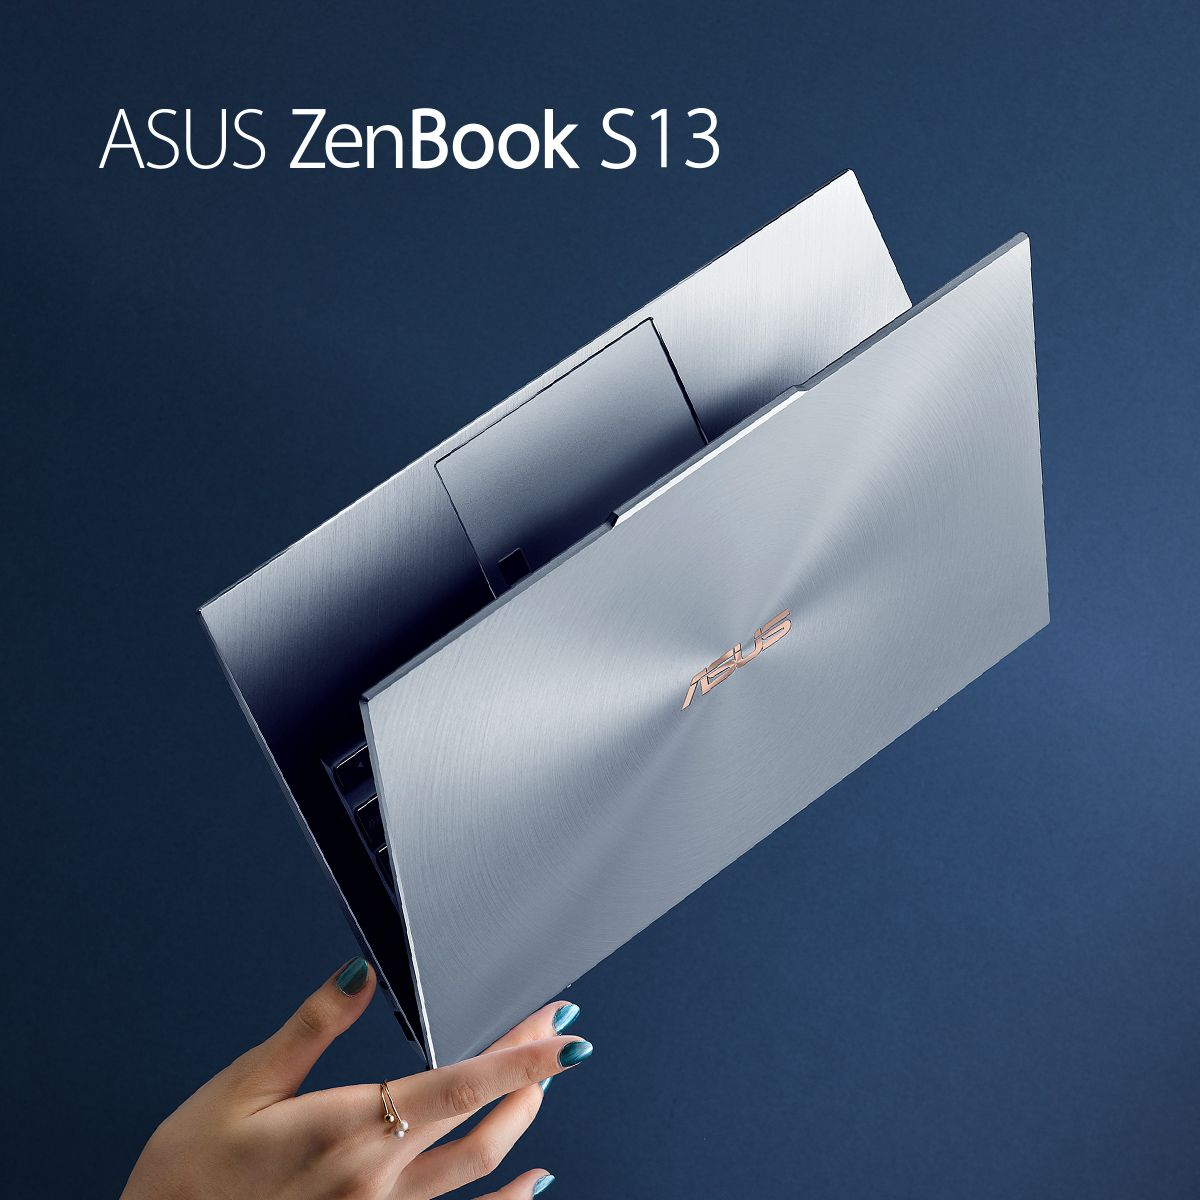 Asus Zenbook S13 Power And Beauty Evolved Asus Good Advertisements Interactive Display